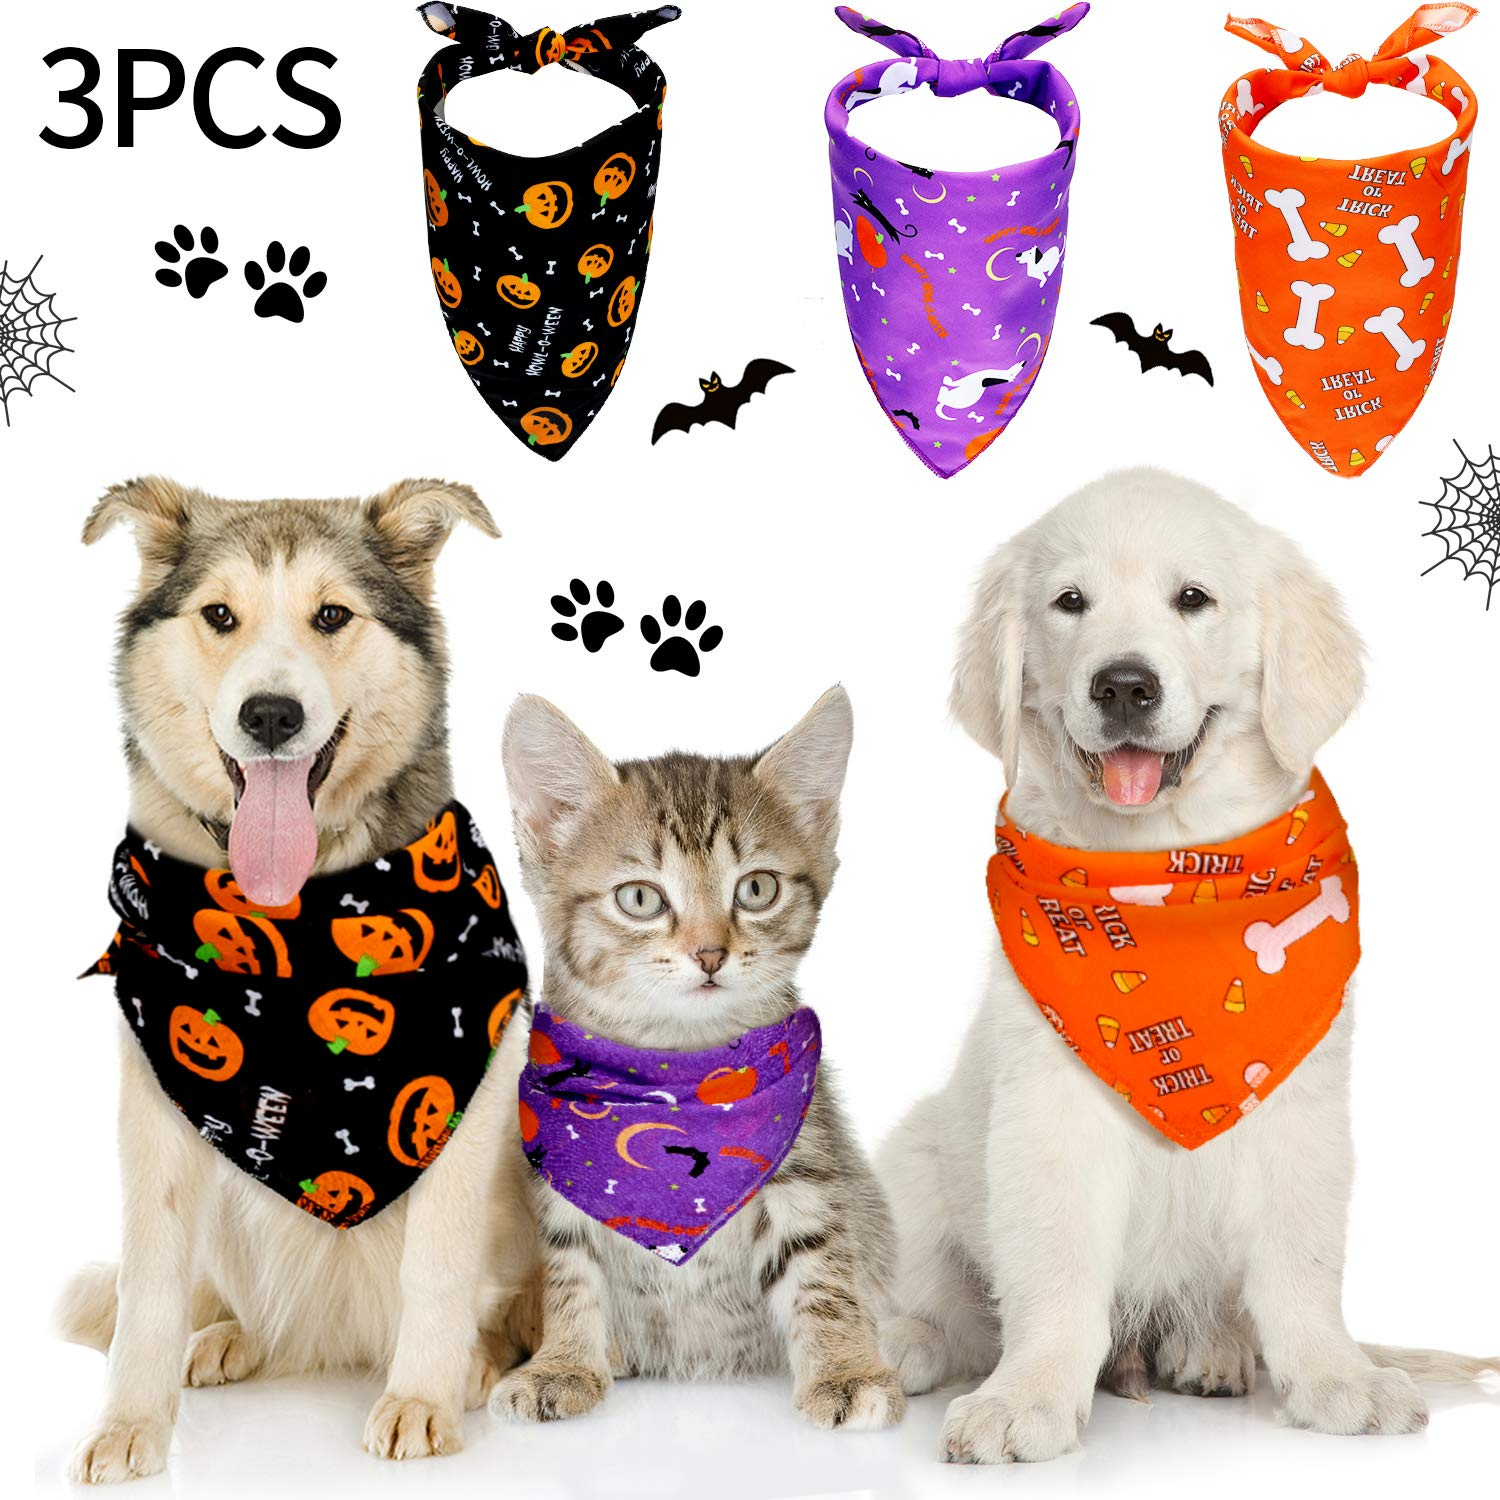 Frienda 3 Pieces Halloween Dog Bandanas Thanksgiving Pet Bandana Pumpkin Pet Scarf Neckerchief Washable Dog Bibs for Dog and Cat  Orange  Purple and Black